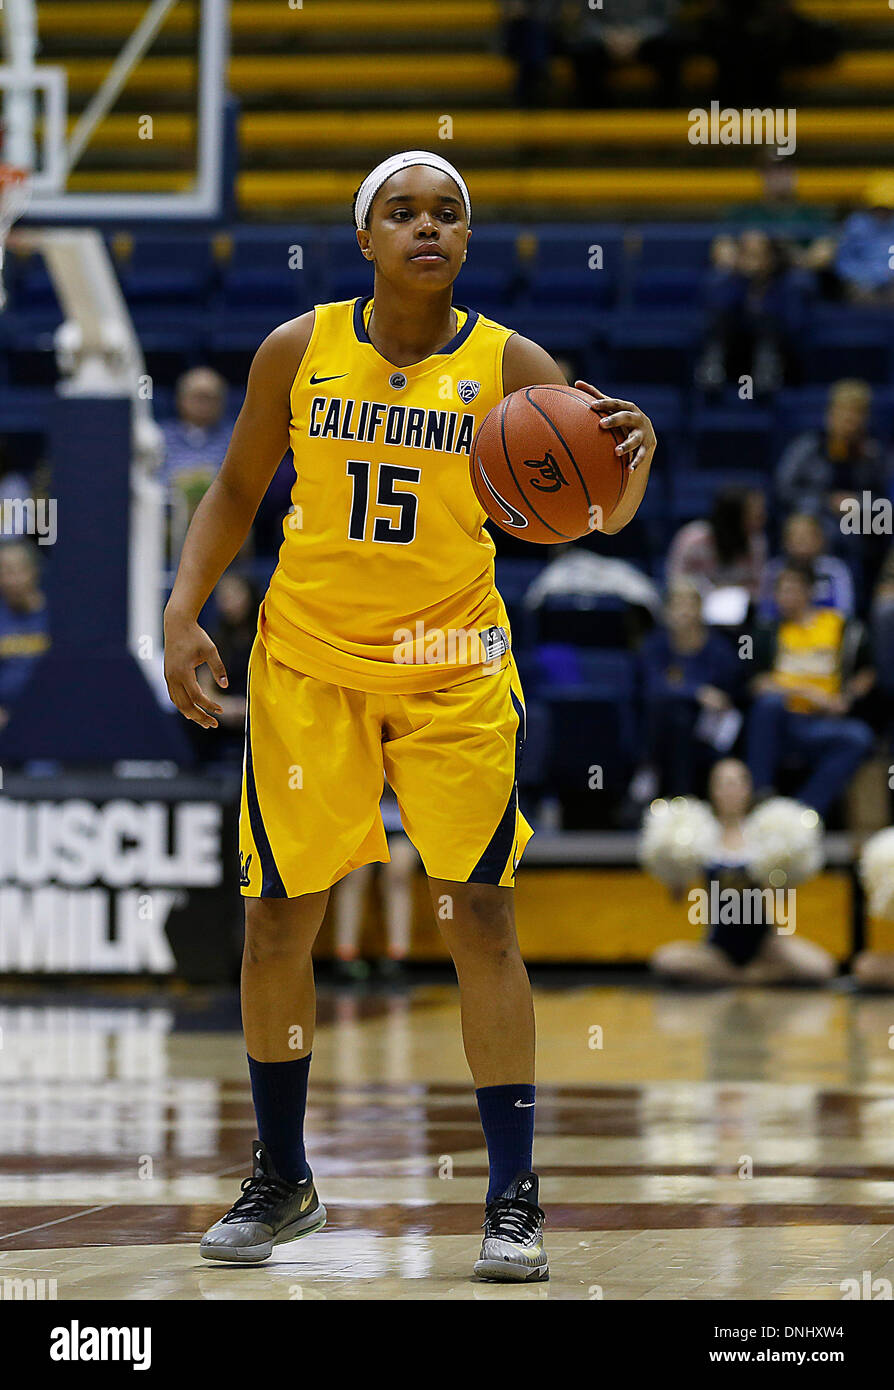 Berkeley, CA, USA. 29th Dec, 2013. Dec 29 2013 - Berkeley CA USA California Bears G # 15 Brittany Boyd during NCAA Womens Basketball game between Lafayette College Leopards and California Golden Bears 77-60 win at Hass Pavilion Berkeley Calif © csm/Alamy Live News - Stock Image